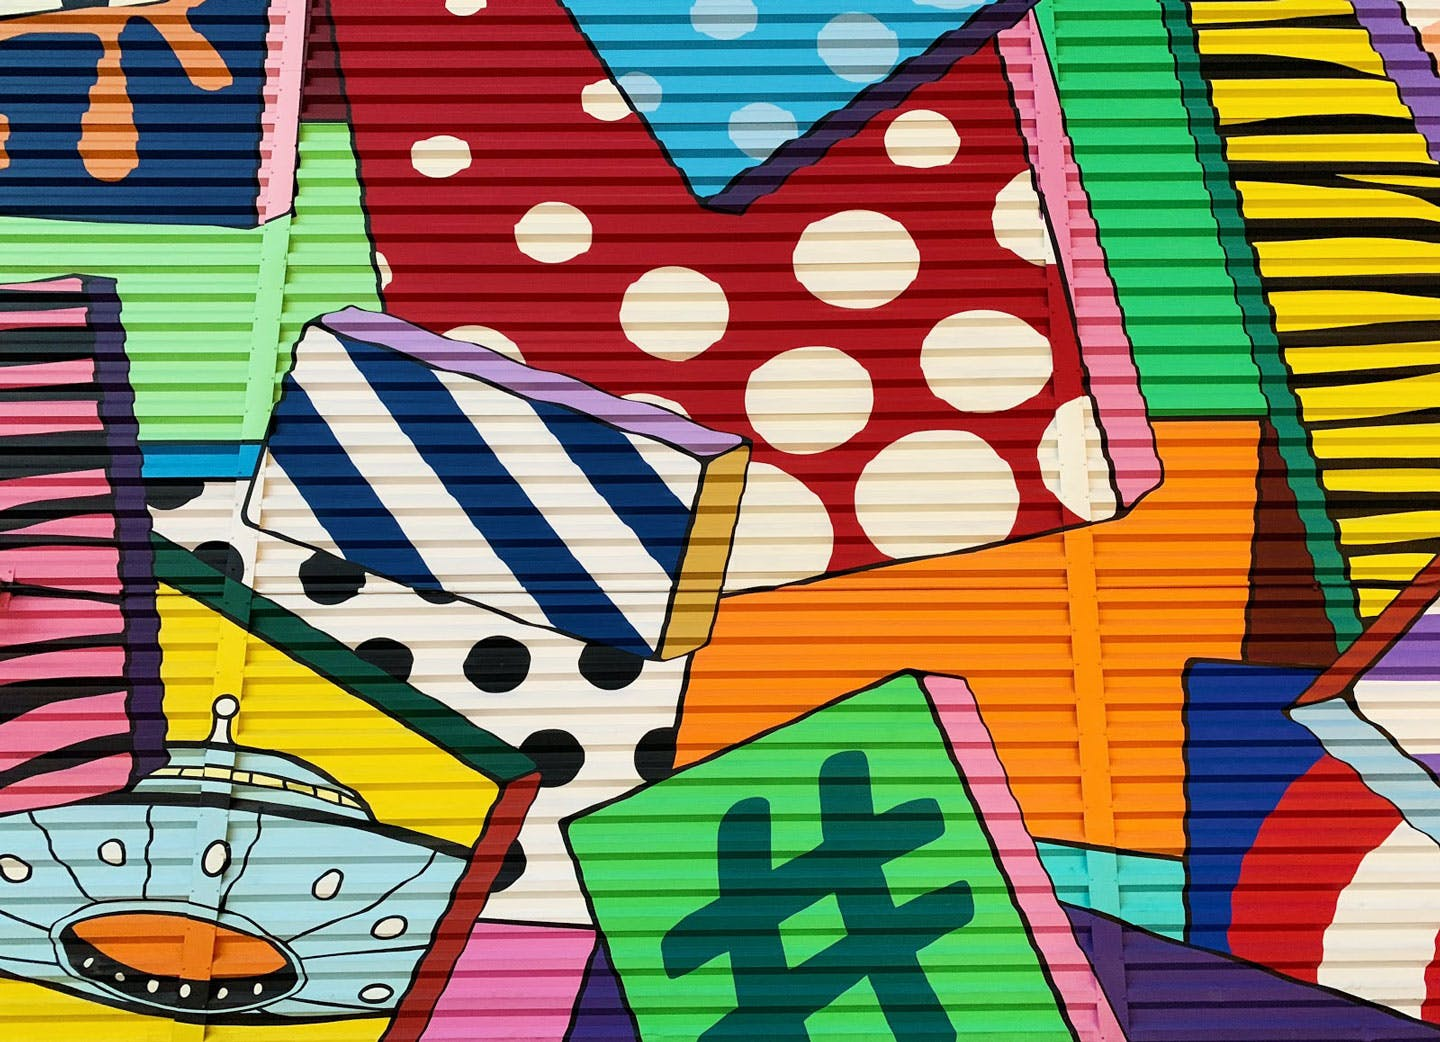 colorful graffitied patterned tiles in a collage